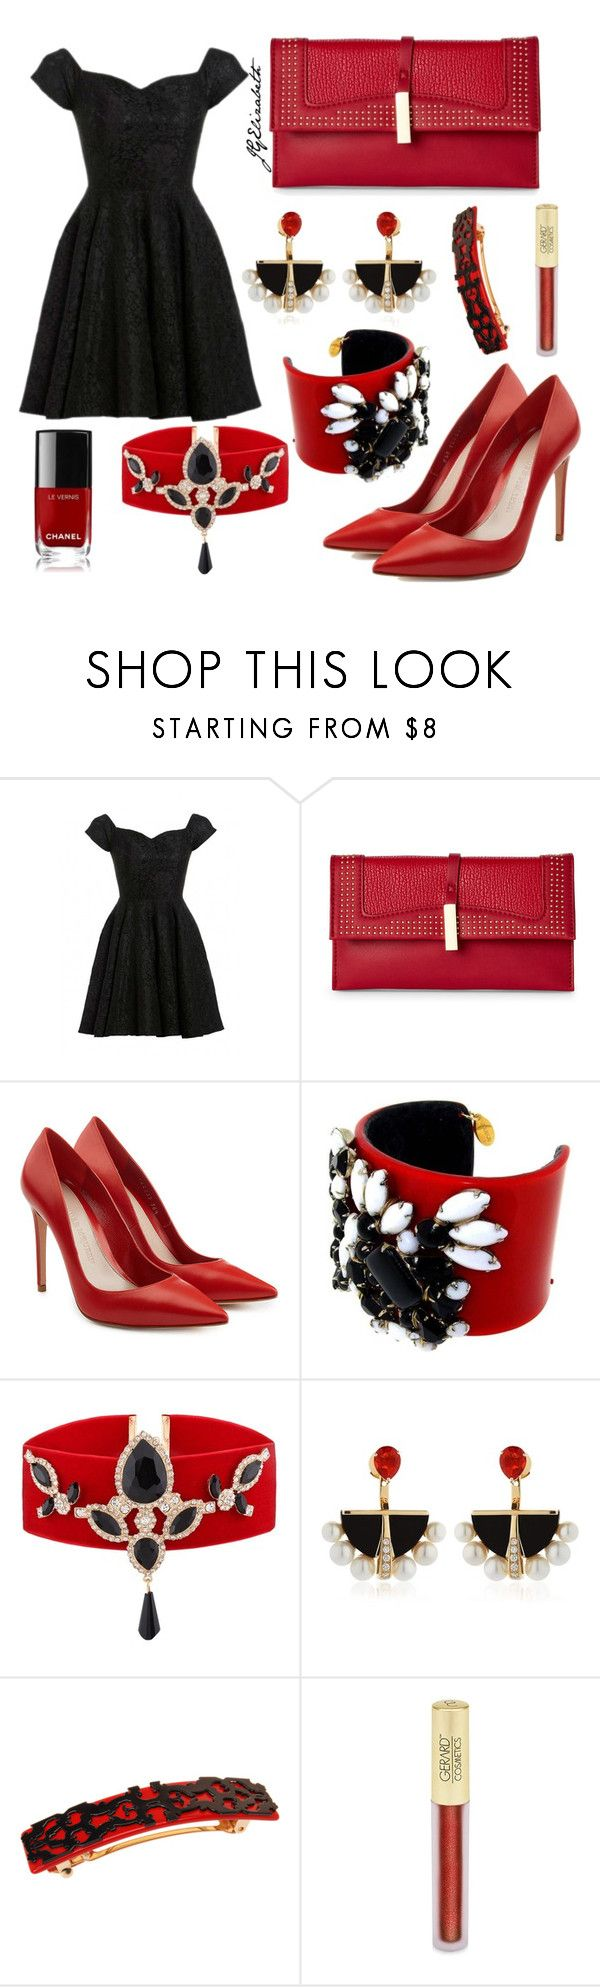 """Untitled #213"" by jgelizabeth ❤ liked on Polyvore featuring D.anna, Danielle Nicole, Alexander McQueen, Lalique, L. Erickson, Forever 21 and Chanel"